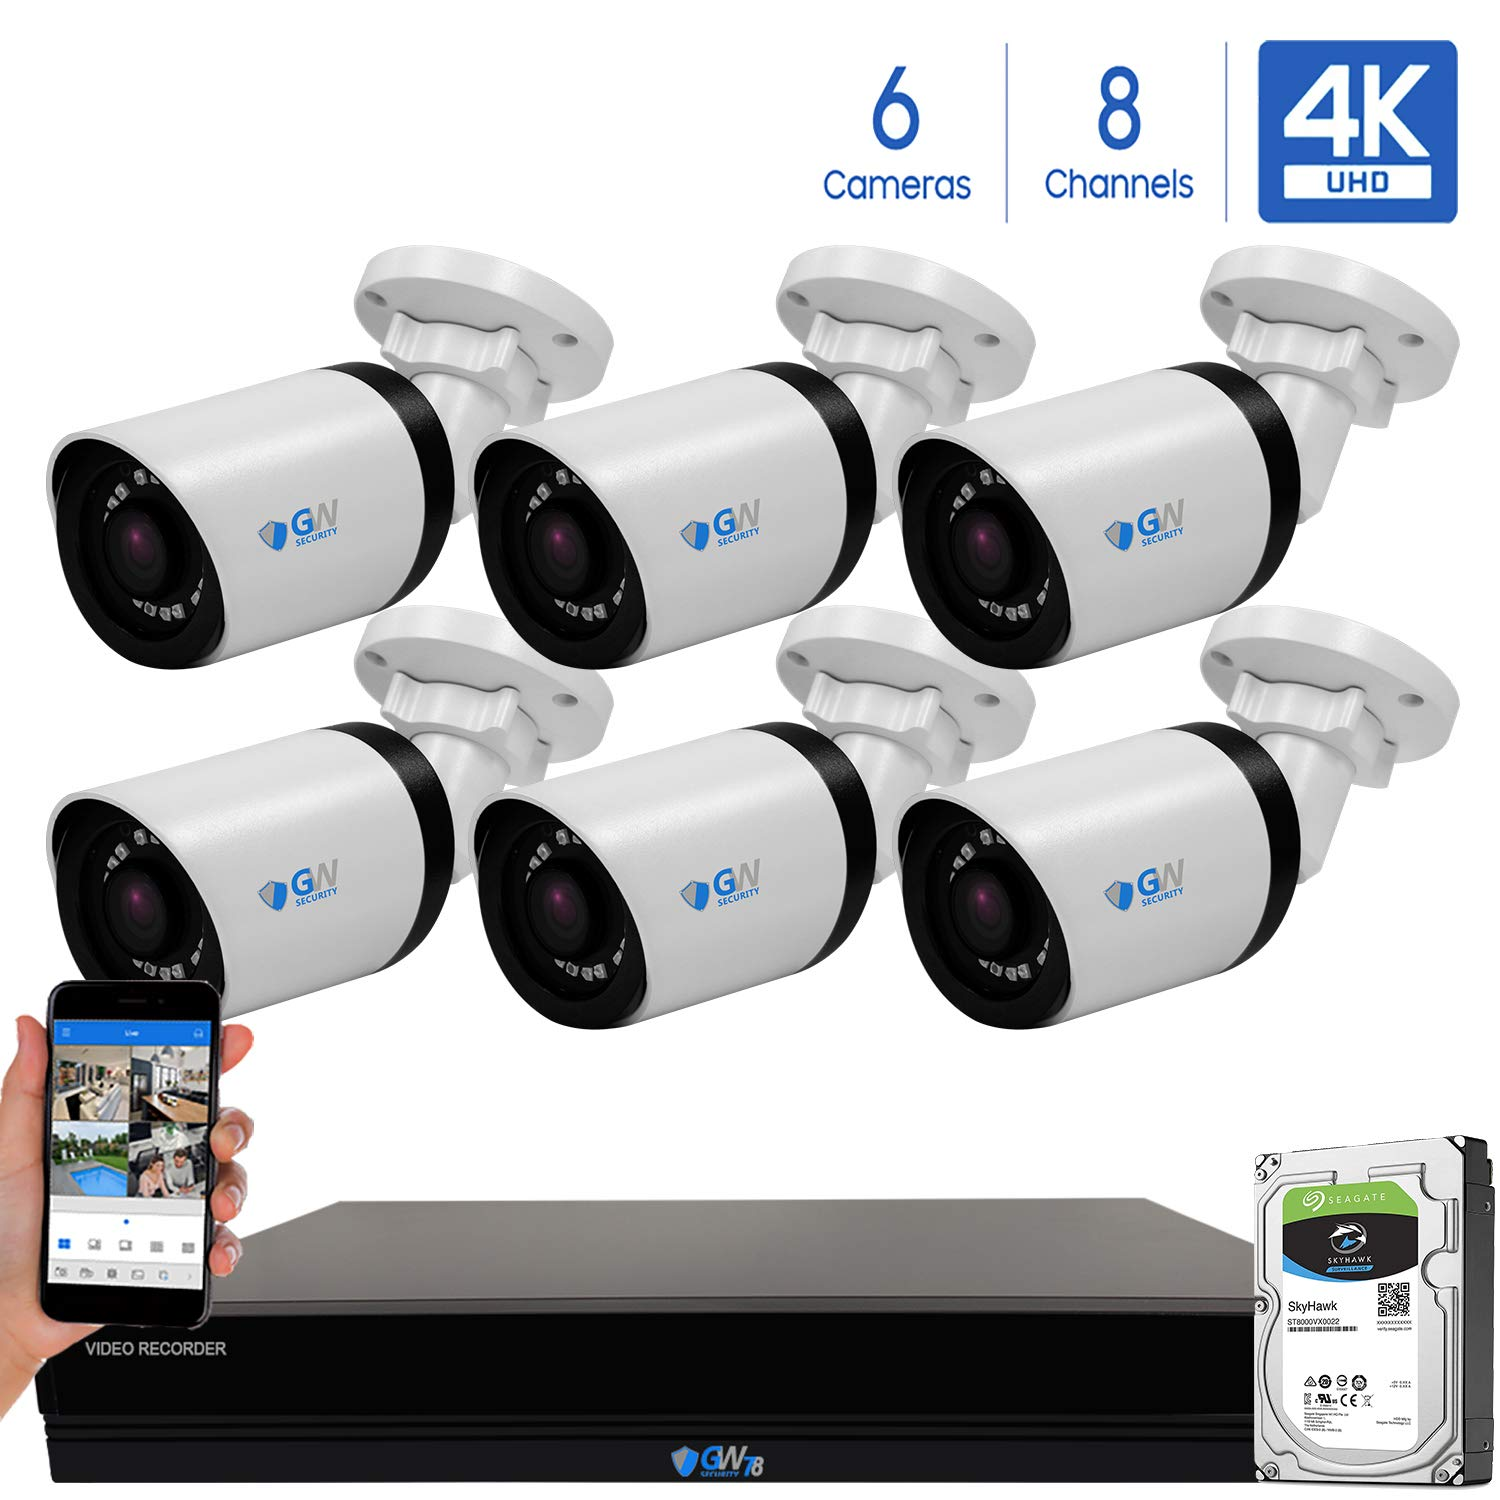 GW 8 Channel 4K H.265 CCTV DVR Security System with 6 x HD 8MP 2160P Outdoor Indoor 4K Bullet Security Cameras, 100ft Night Vision, 2TB Hard Drive Pre-Installed